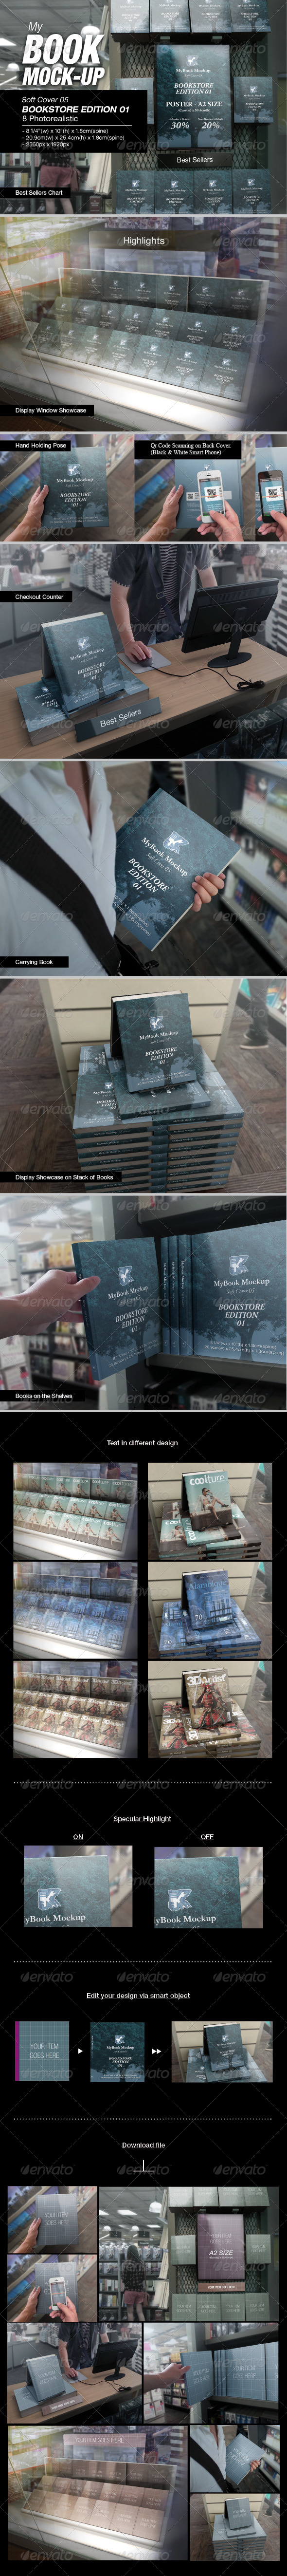 GraphicRiver MyBook Mock-up Bookstore Edition 01 7549686